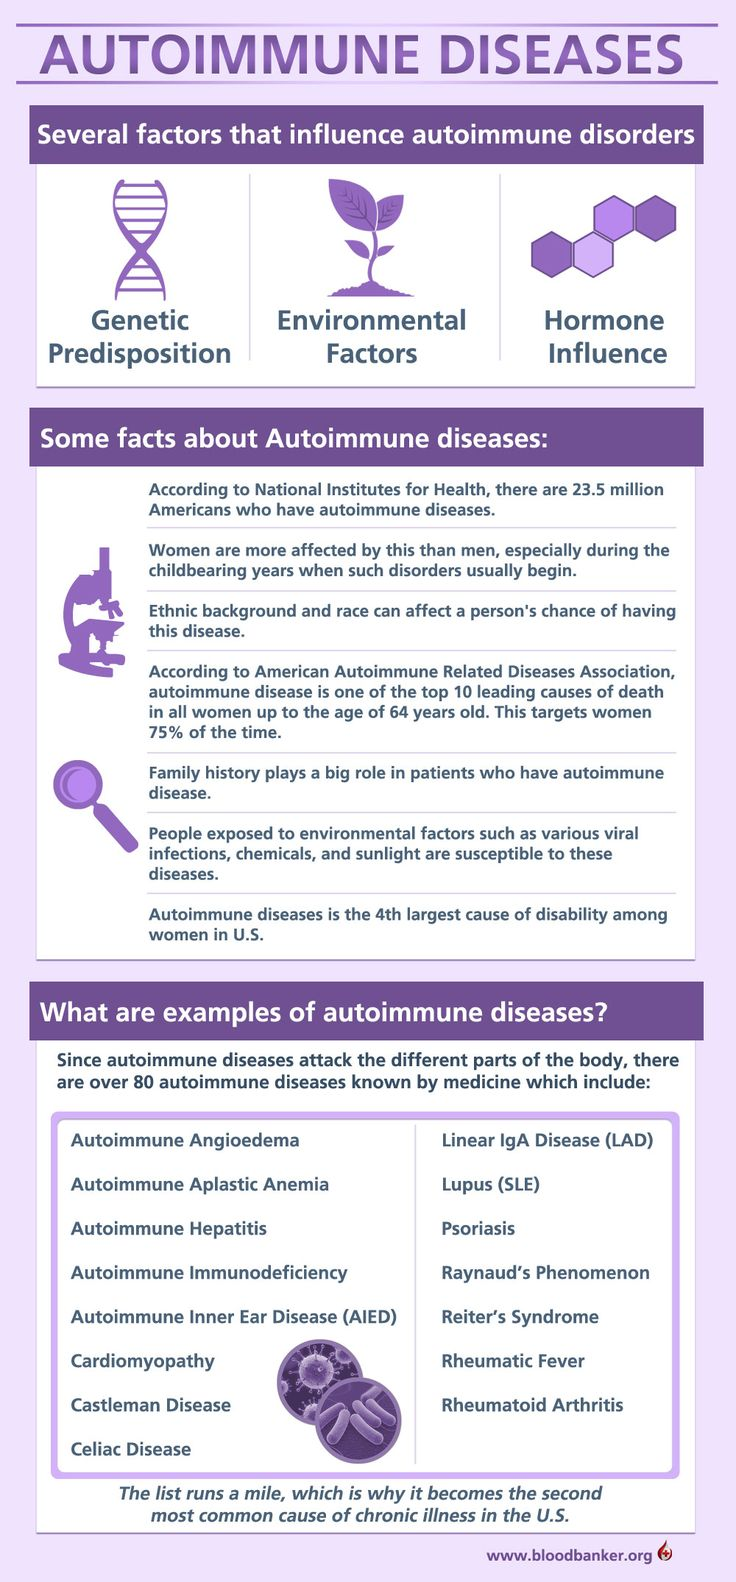 Autoimmune diseases | Repinned by @michaelgleiber